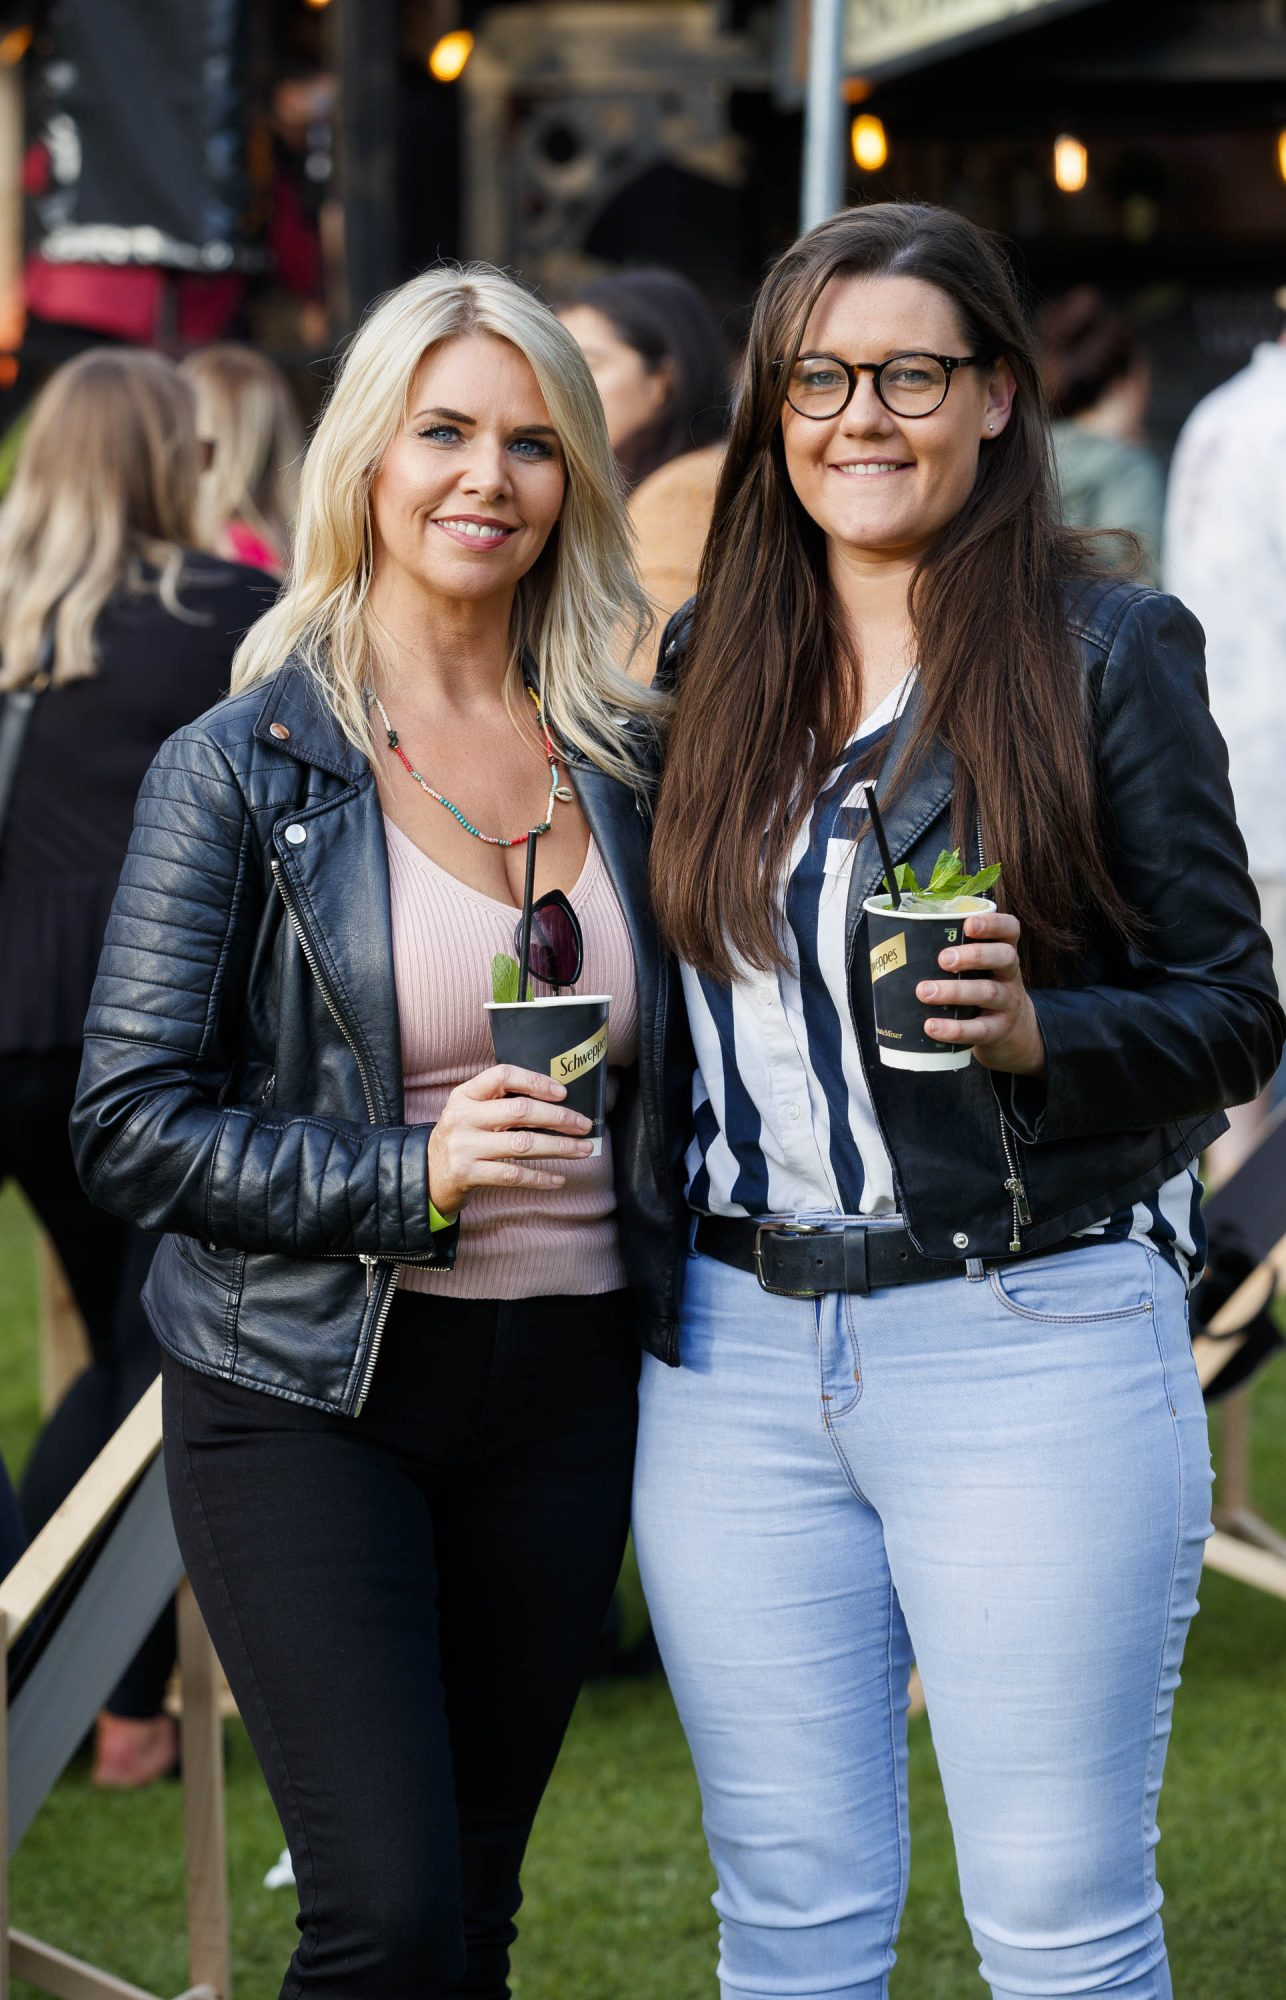 Jules Mahon and Erica Hudson at the Schweppes #UltimateMixer Sessions at The Big Grill festival in Herbert Park, Dublin, where guests sipped on expertly crafted cocktails and enjoyed live music mixes from Irish bands and DJs. Picture: Andres Poveda